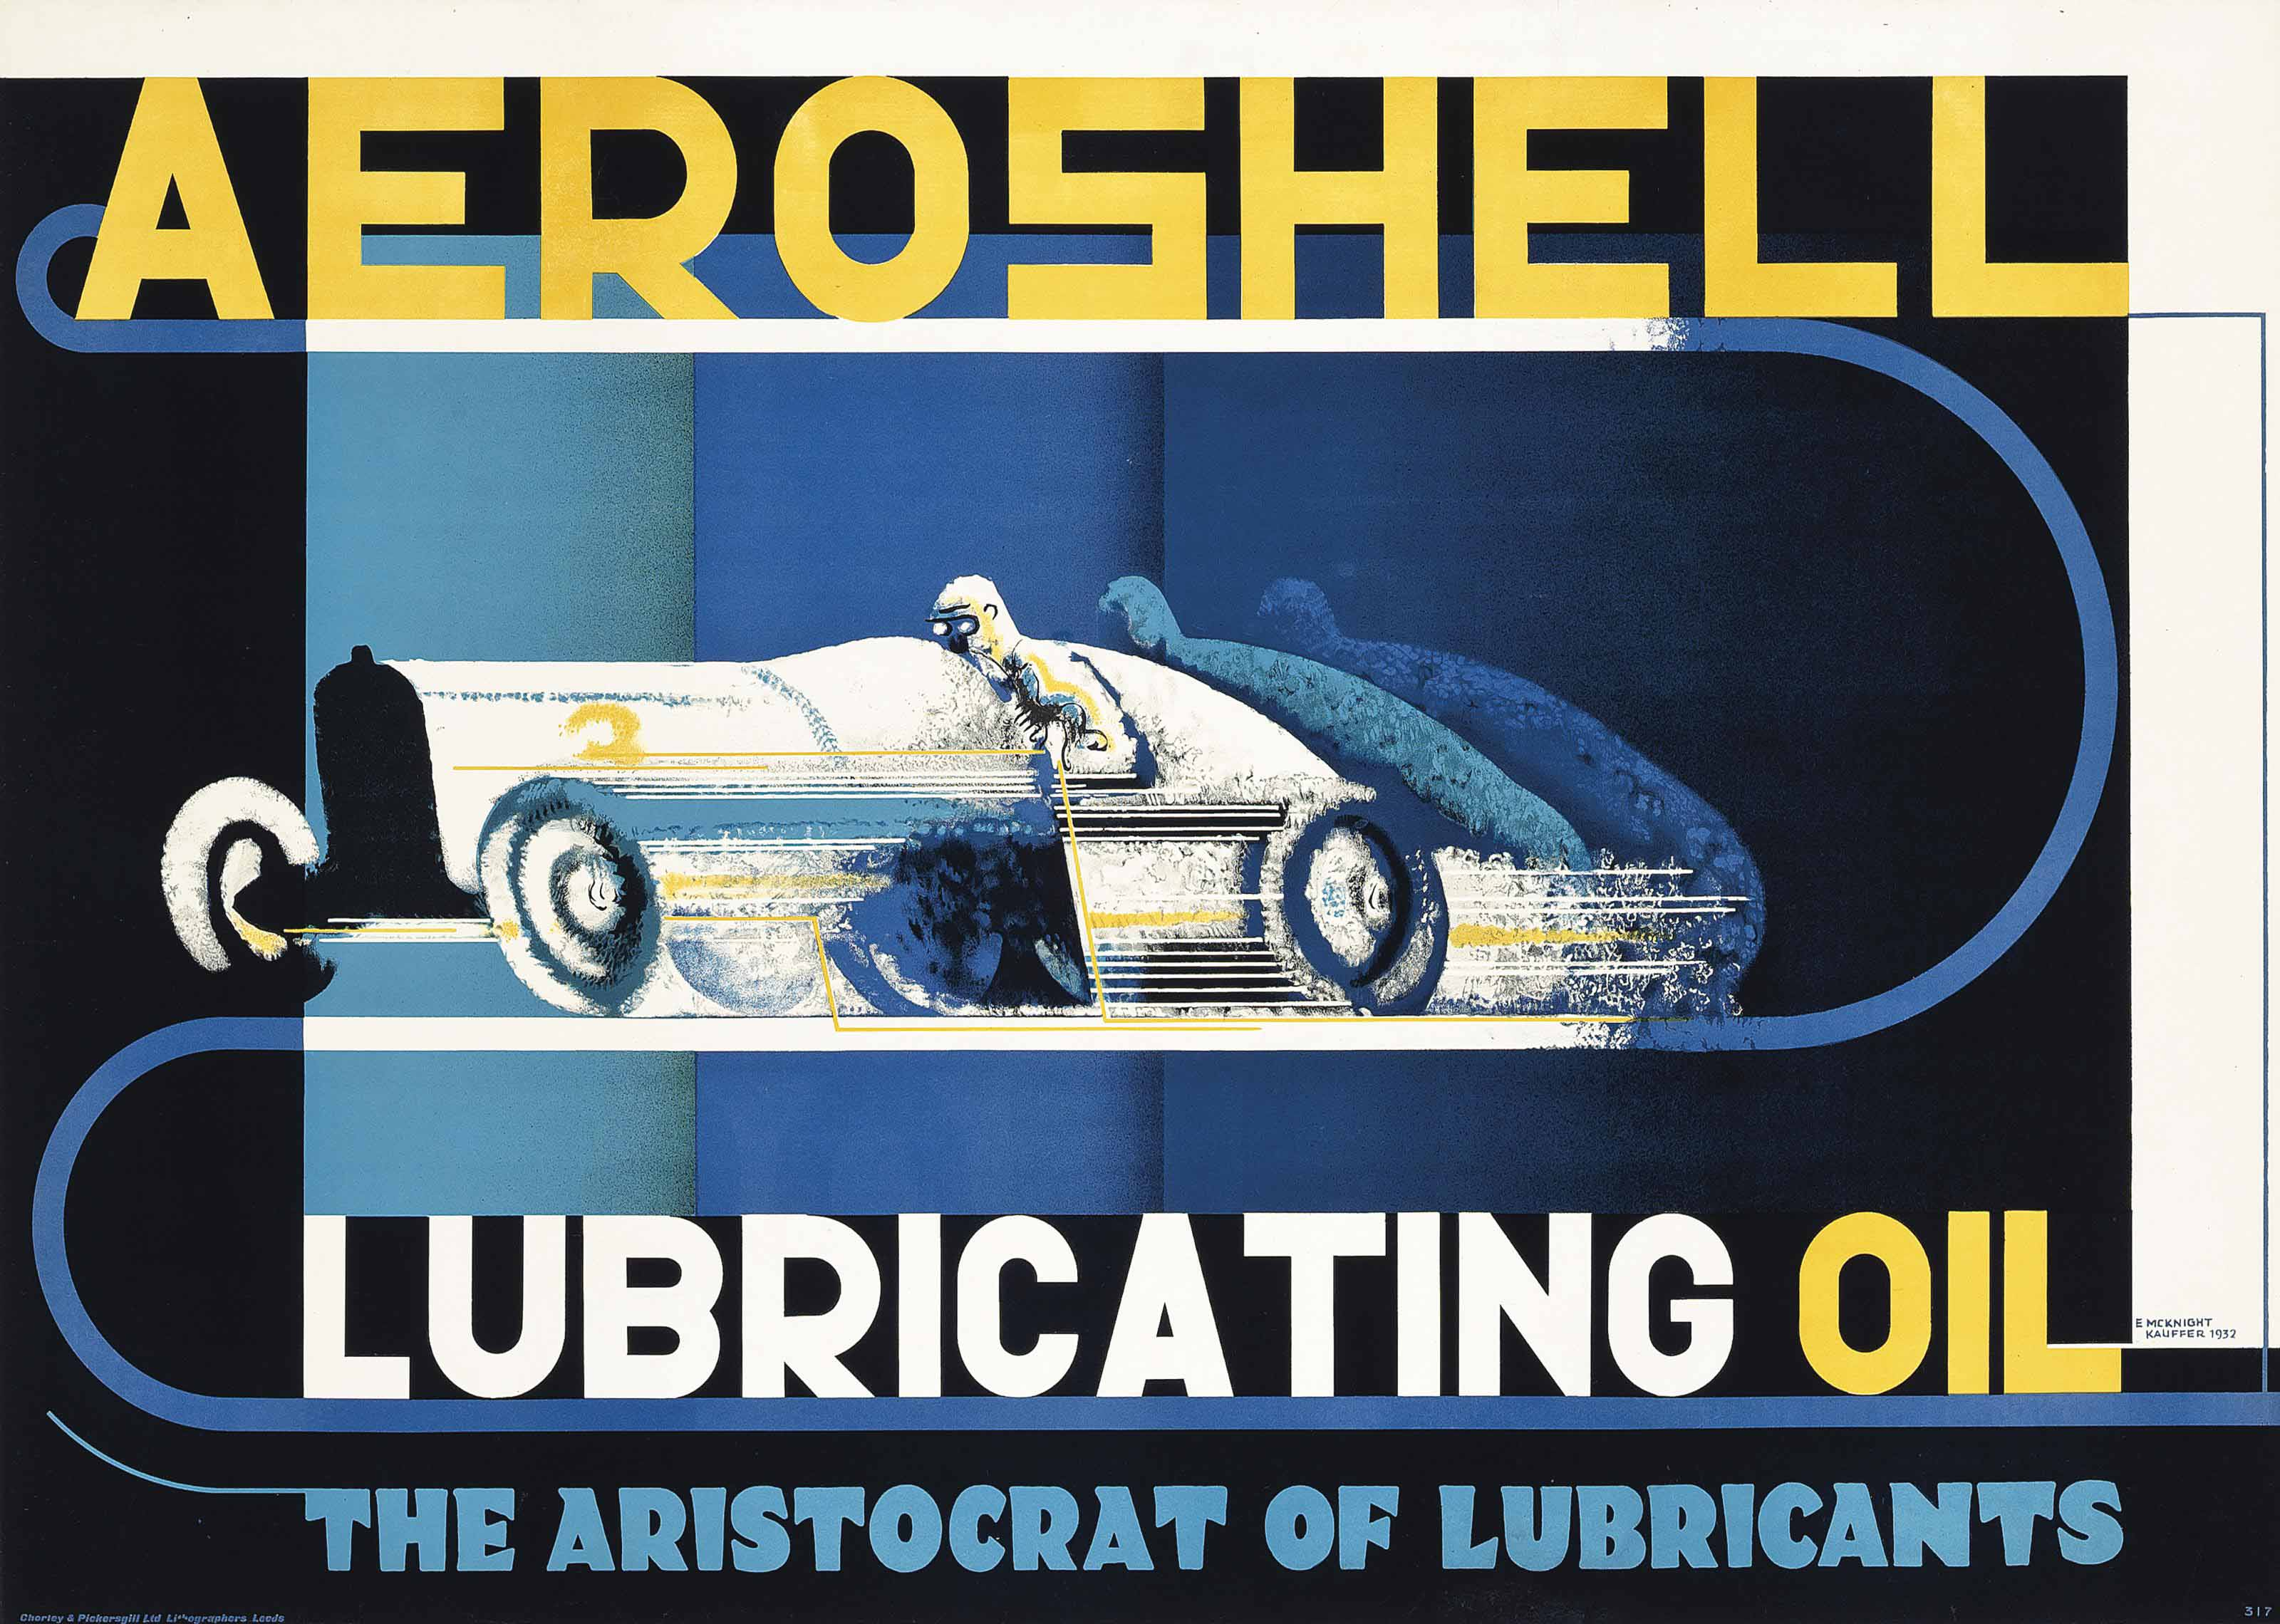 AEROSHELL LUBRICATING OIL